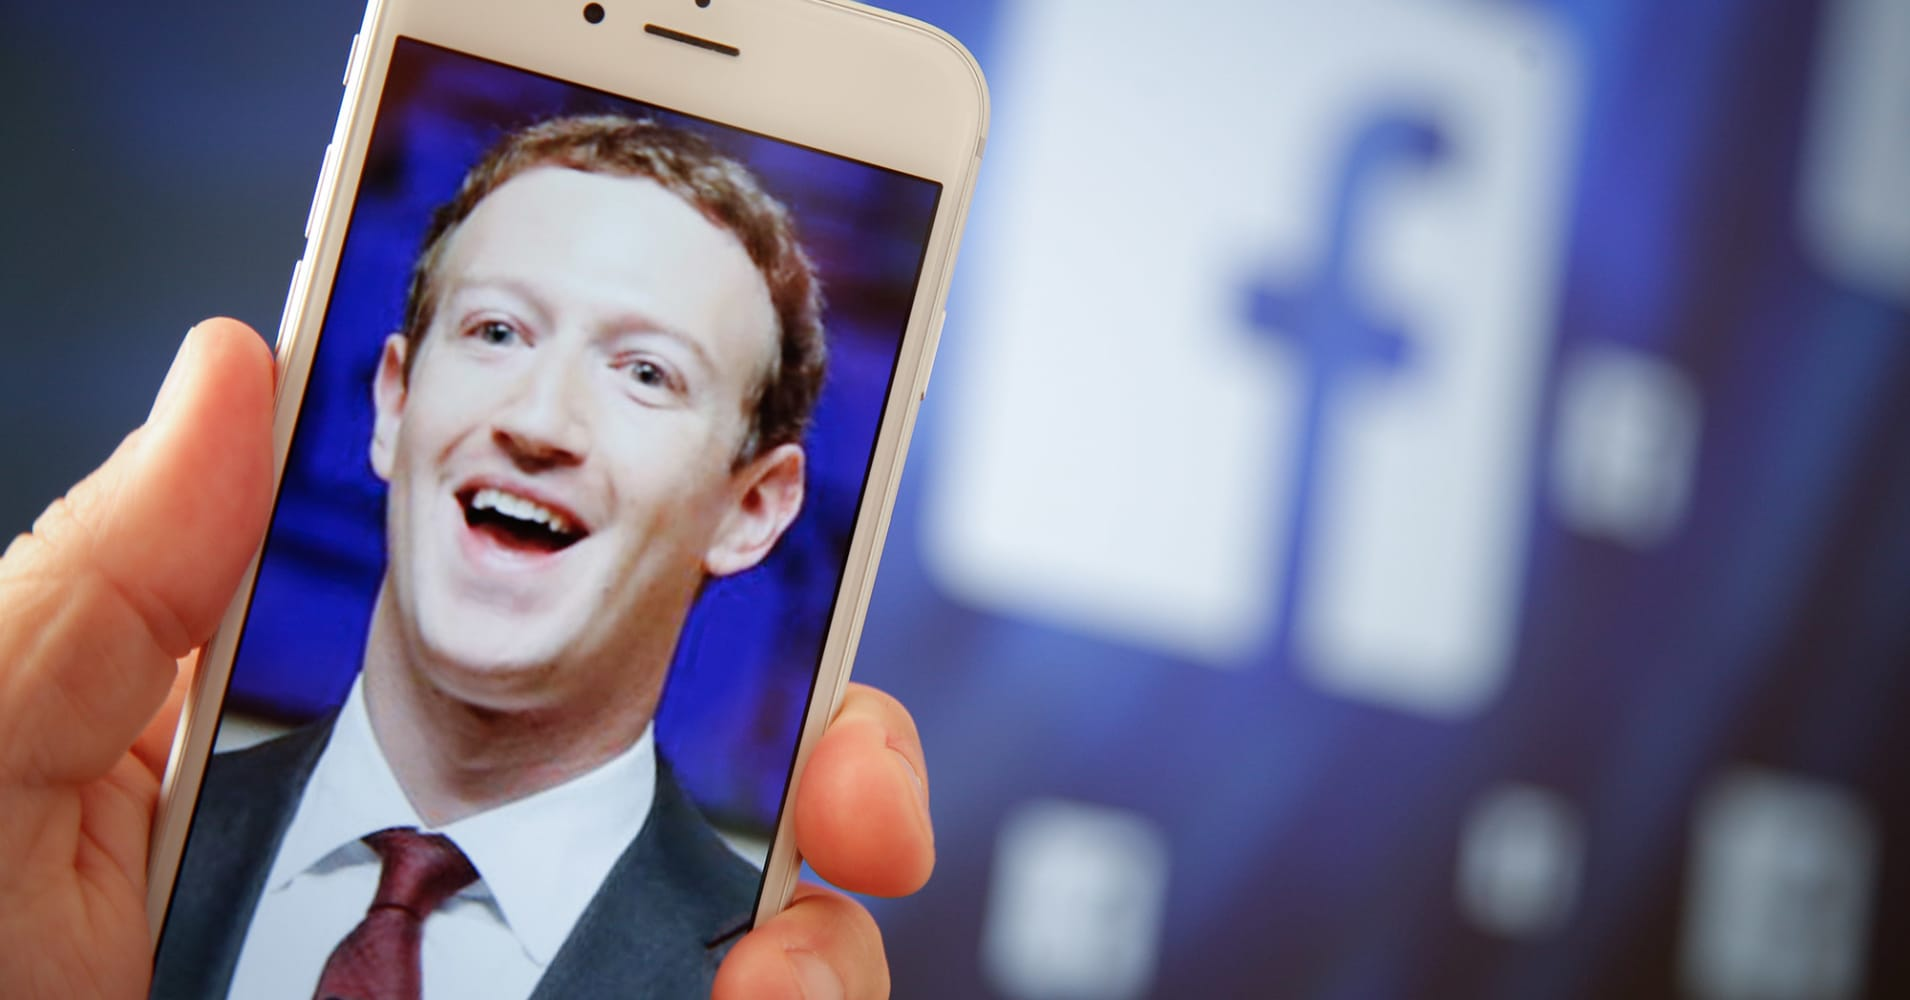 Facebook said it won't separate the News Feed after all